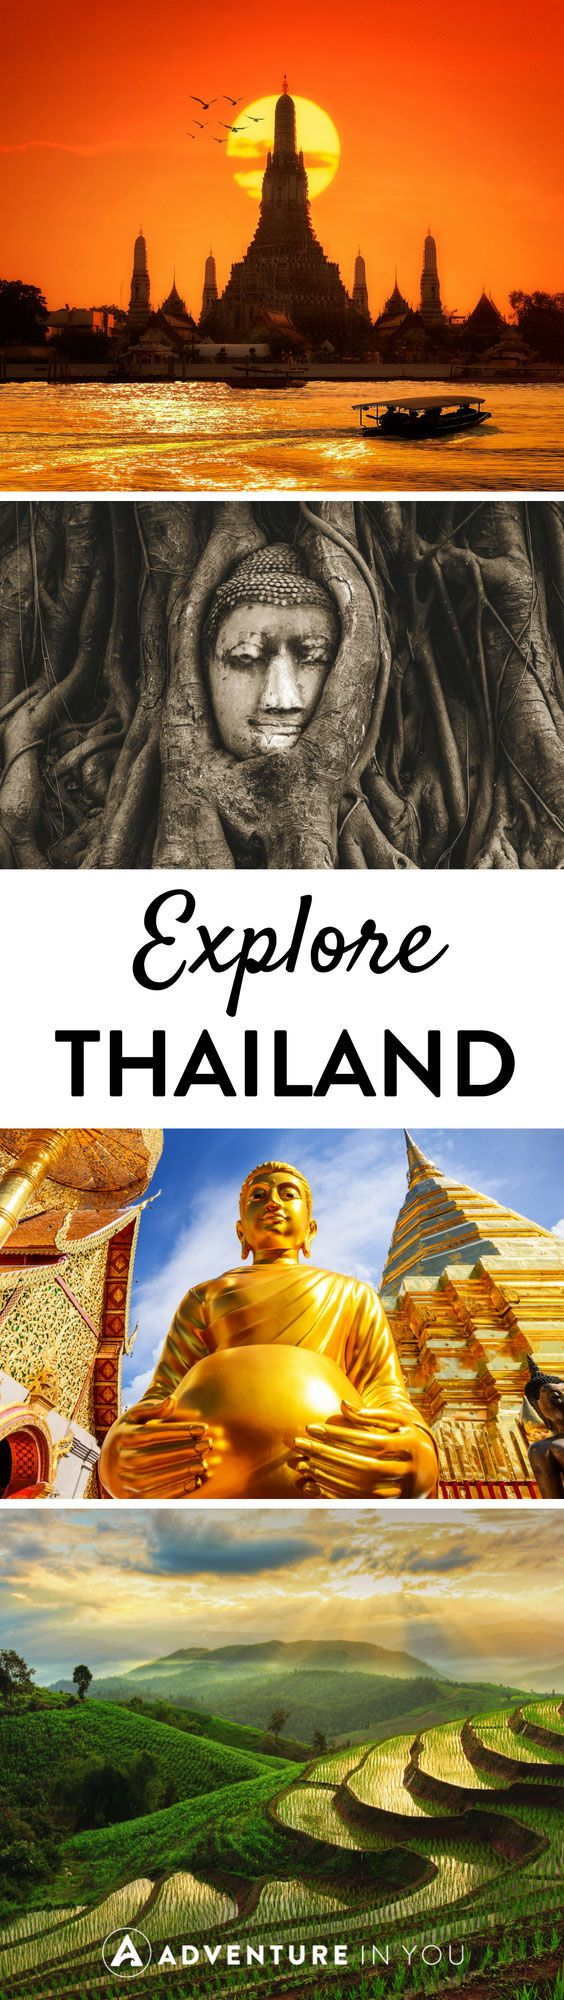 Thailand | Planning a trip to Thailand? Check out these 20 stunning photos and get inspired to make your trip here happen!